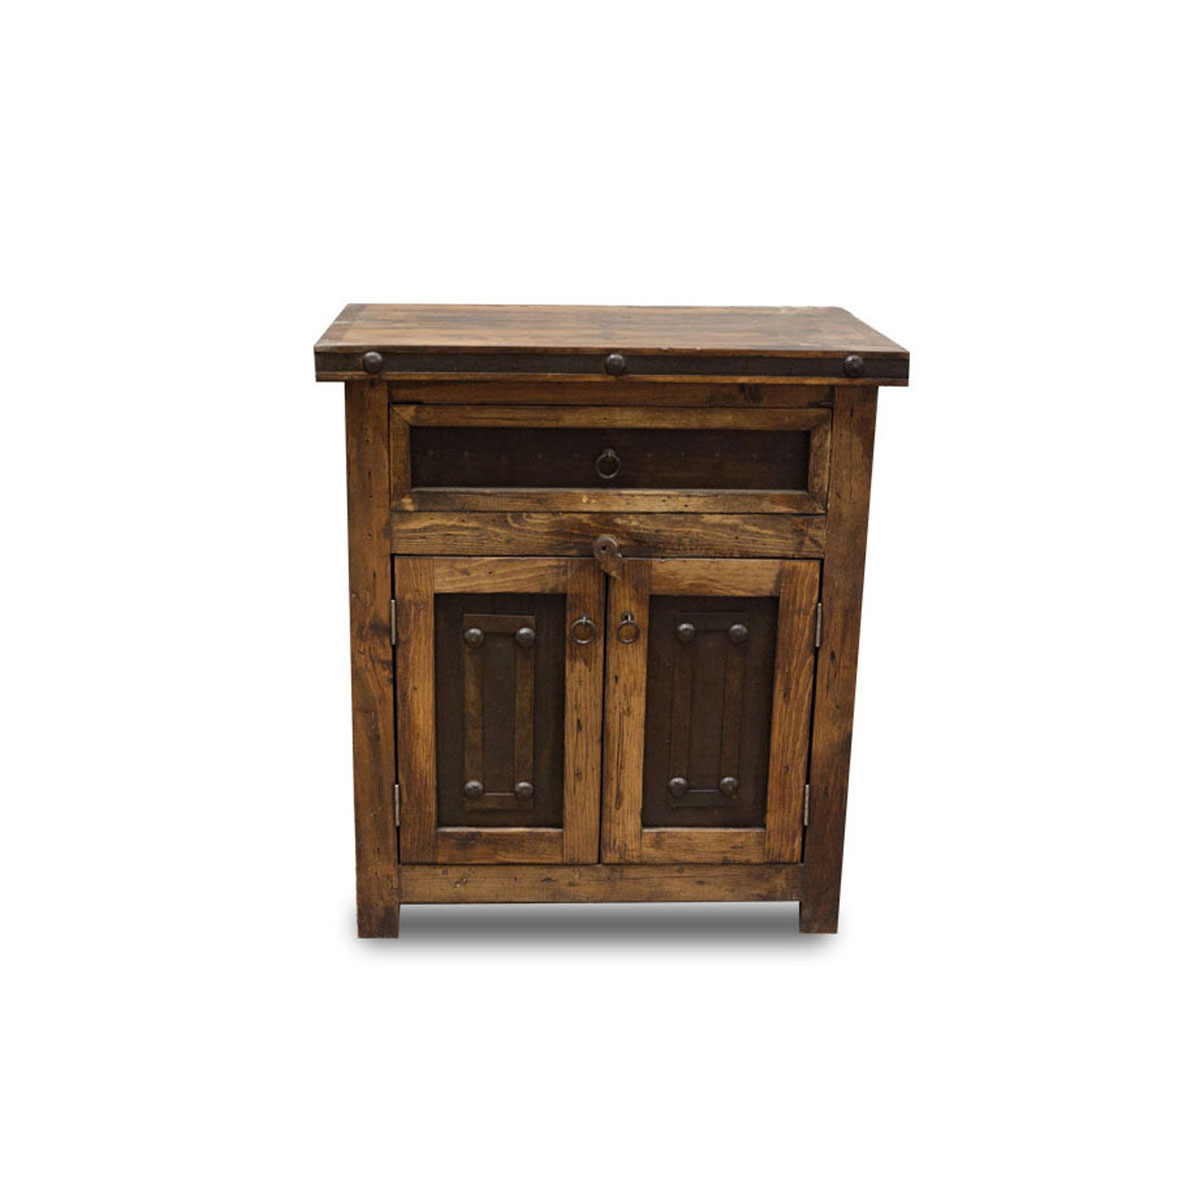 Purchase small reclaimed vanity with metal accents for Small vanity